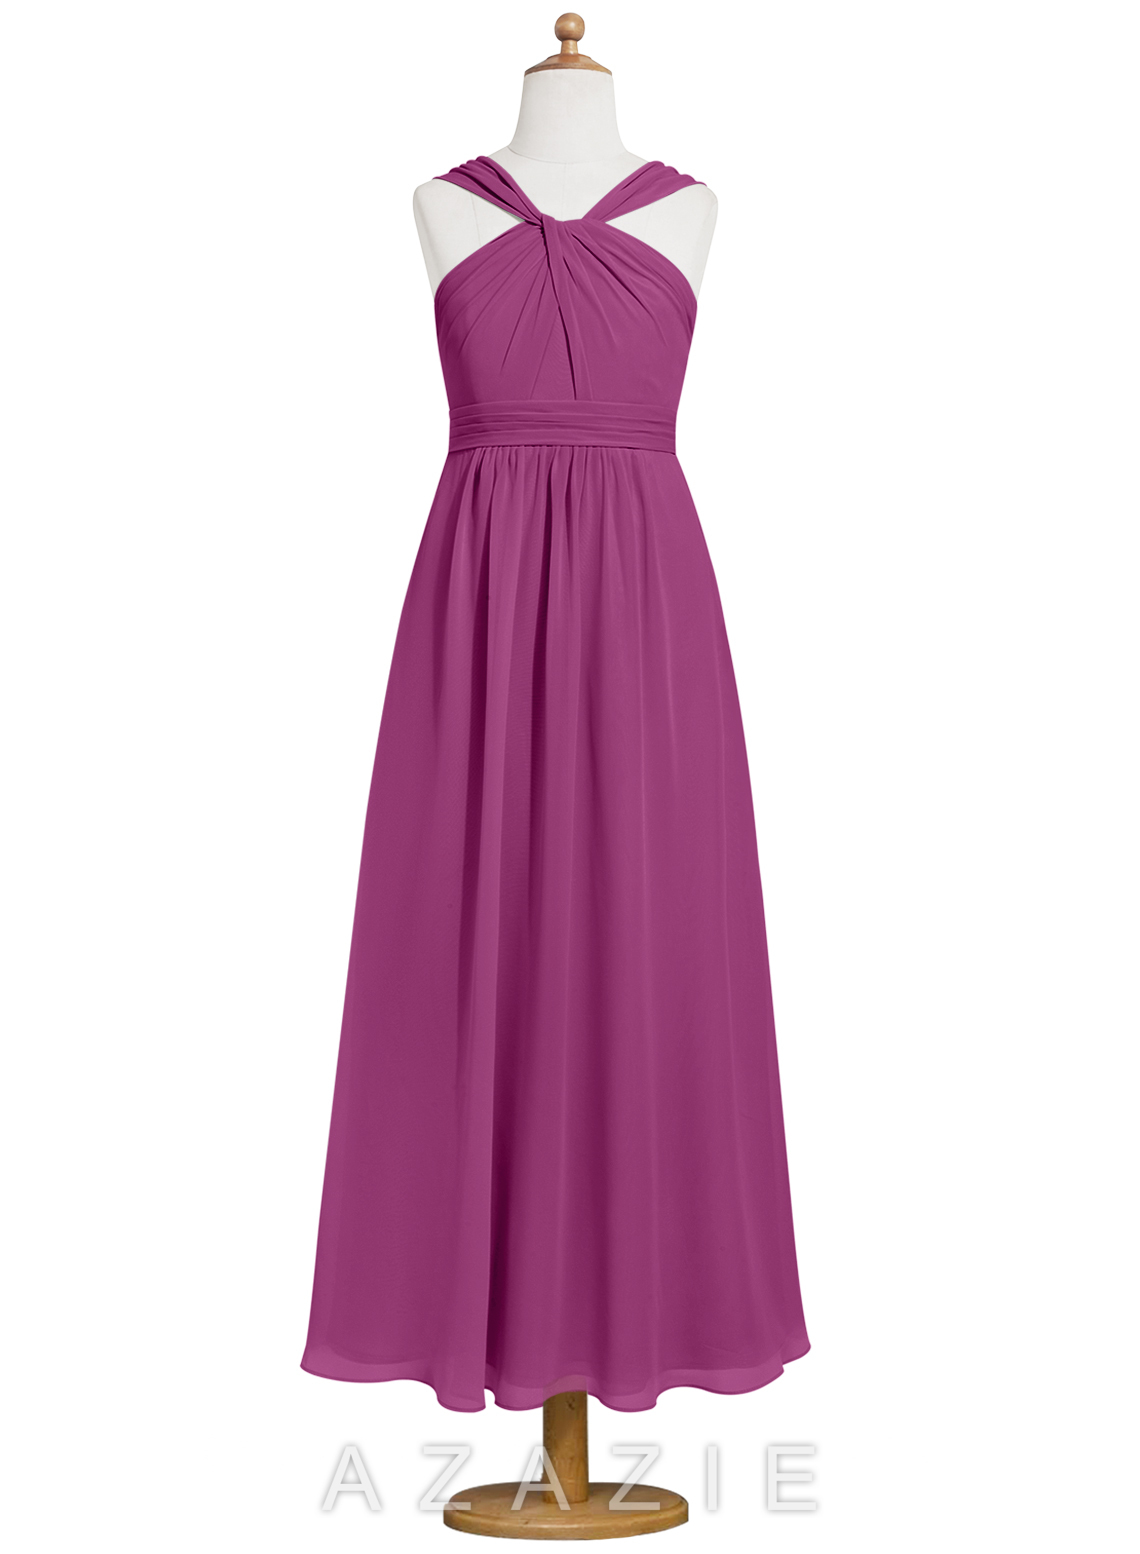 Azazie Dora JBD Junior Bridesmaid Dress Azazie